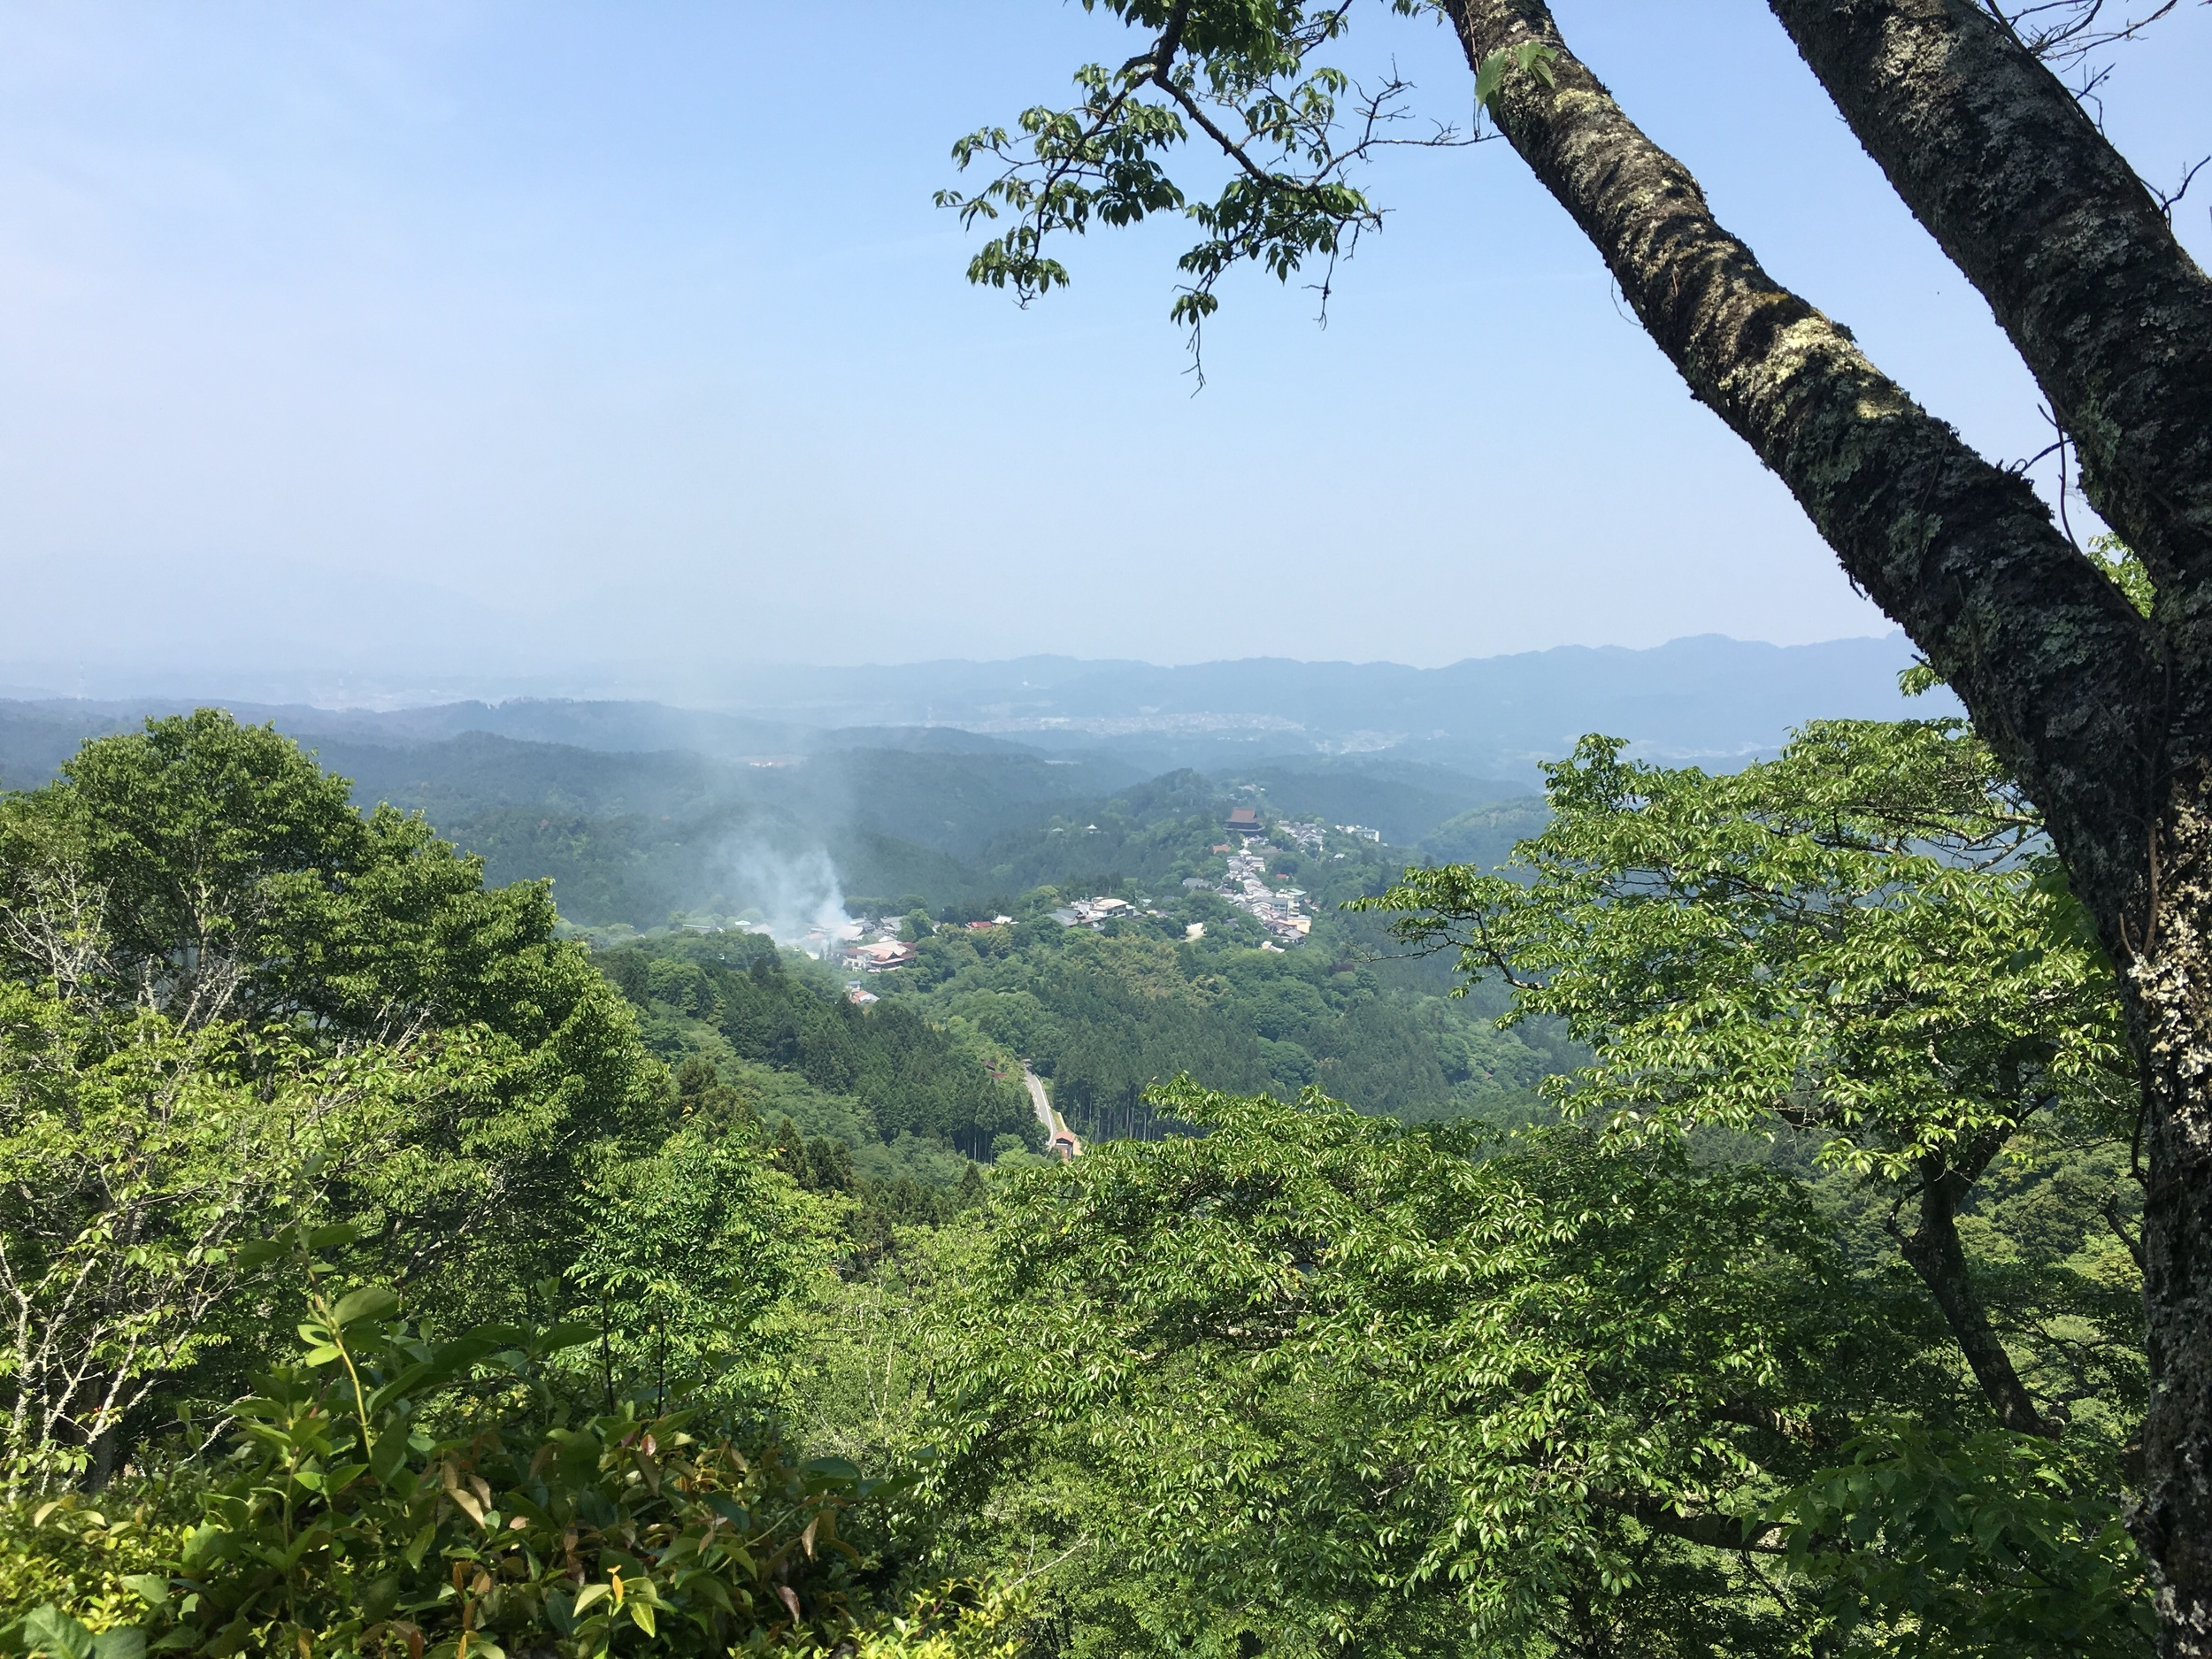 View of Yoshino from our so-so hike. That smoke in the distance is on-purpose temple related. I think.